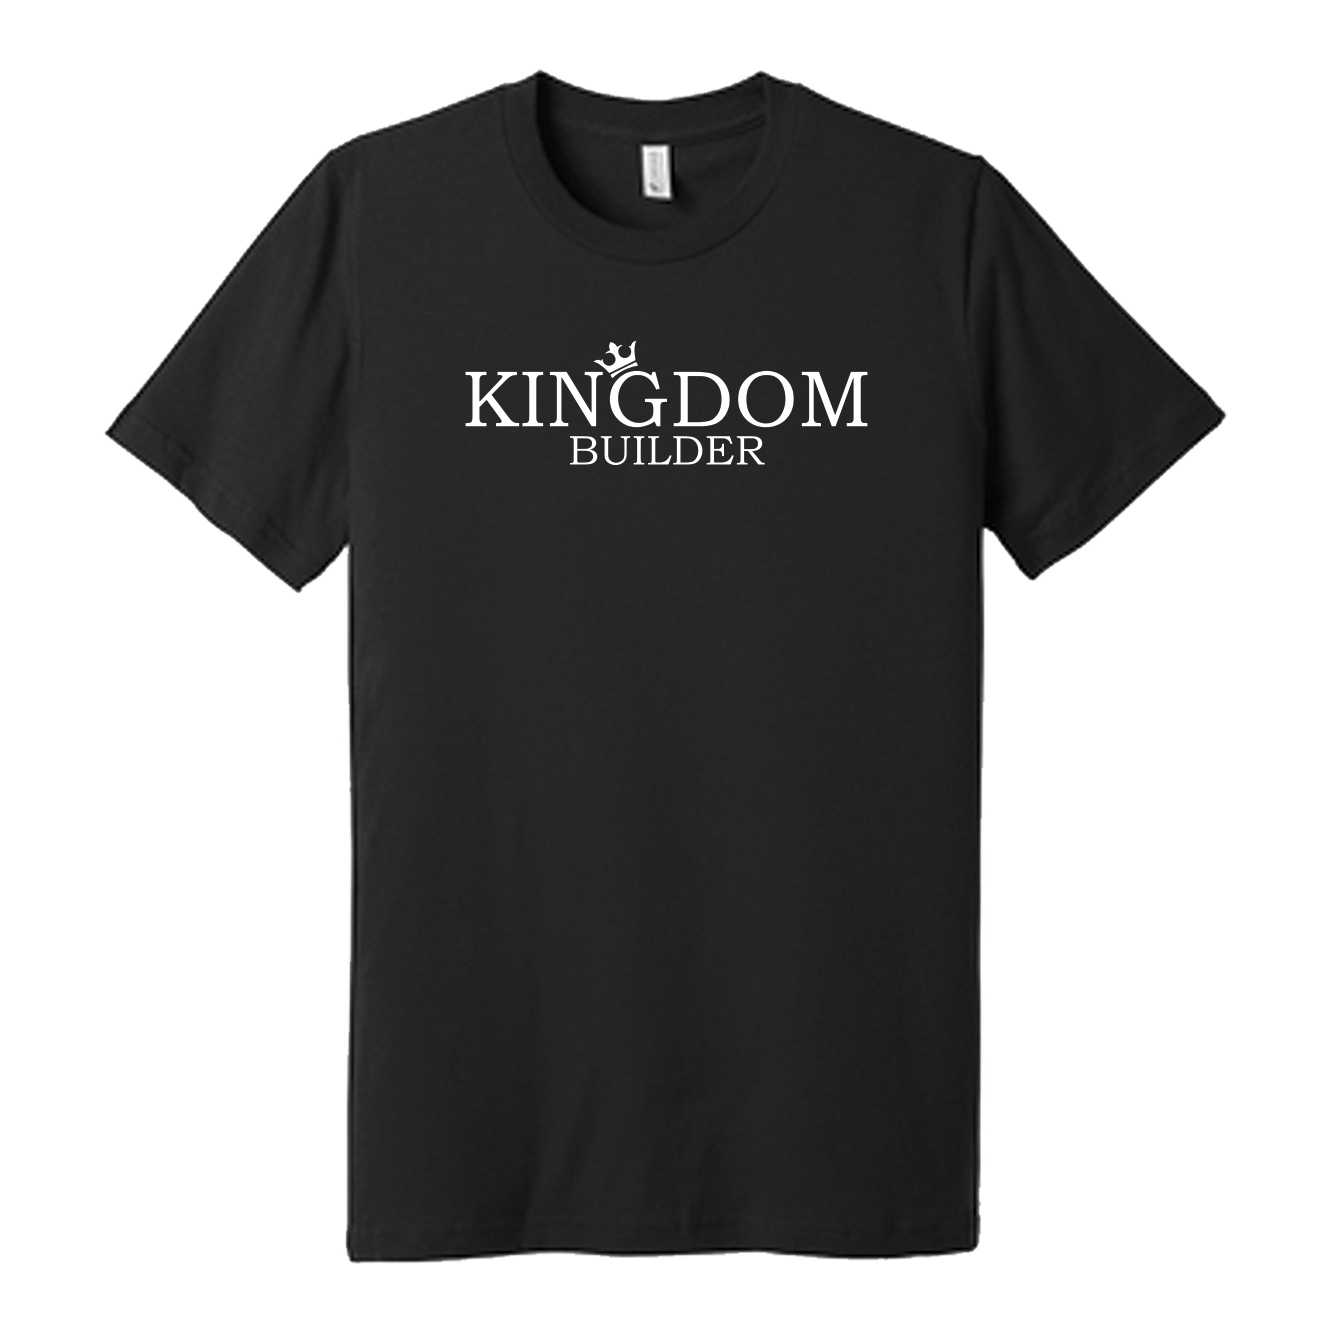 Blk Shirt Kingdom Builder